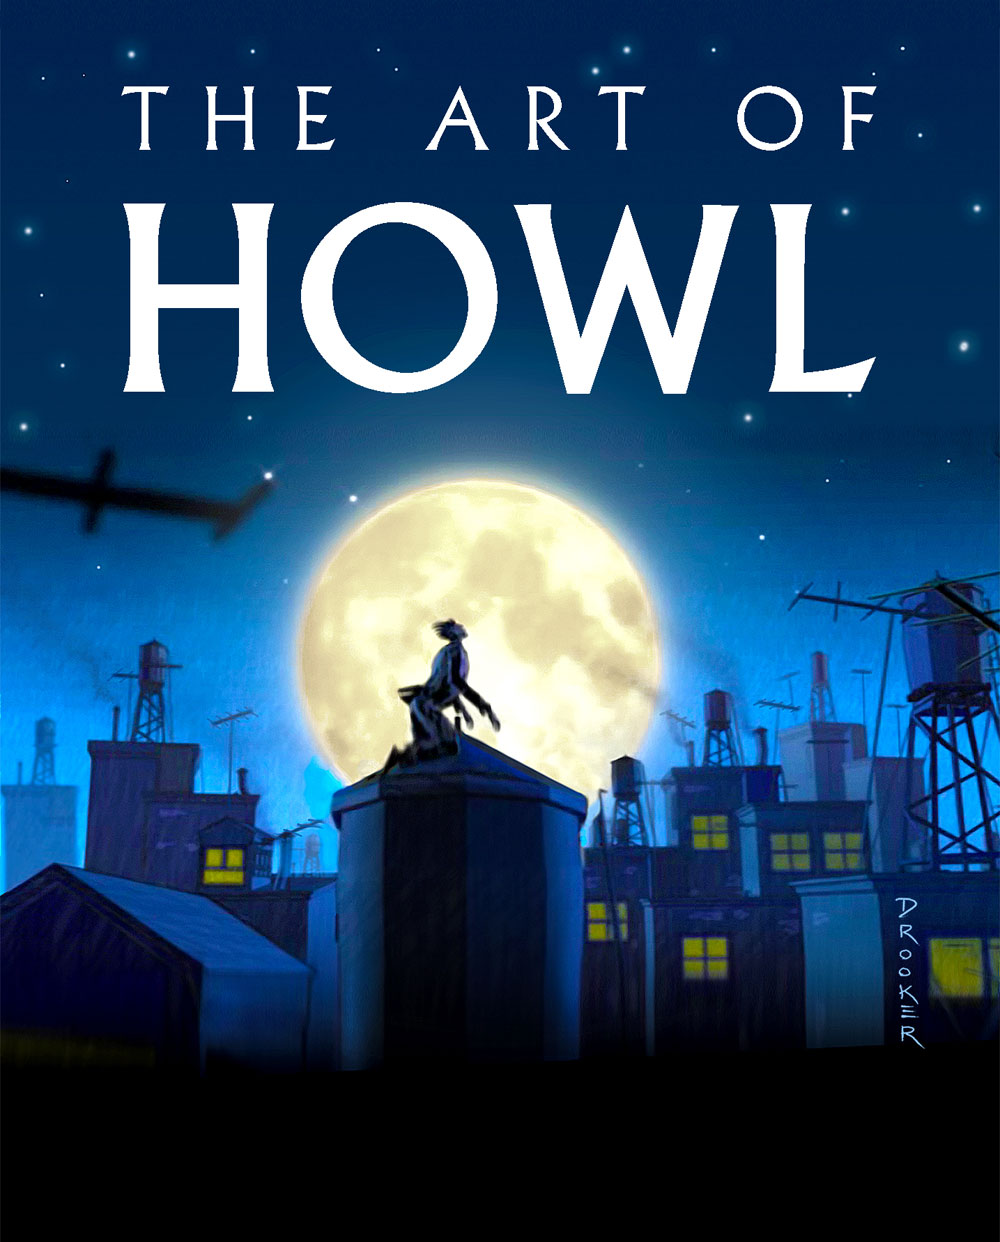 The Art of Howl - May 14 – Sep 11, 2011